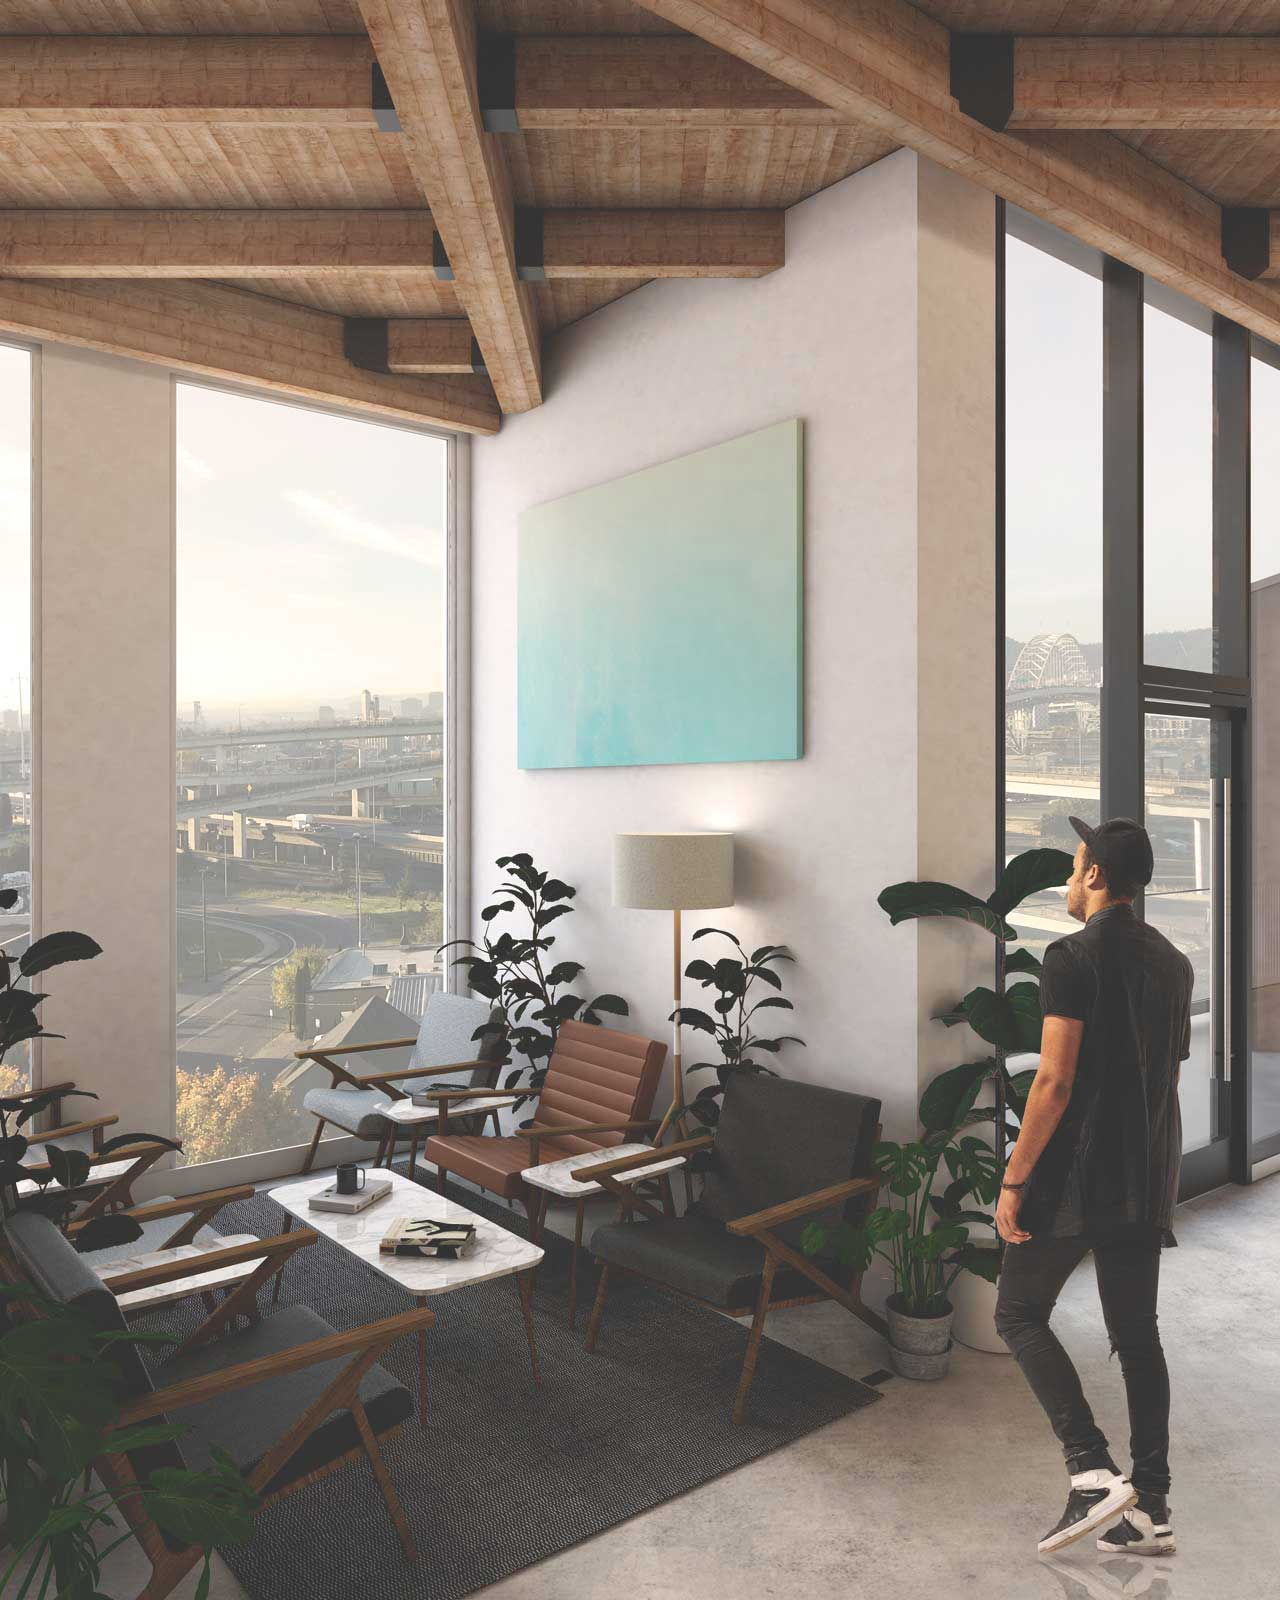 a render of the office interior and view of the city